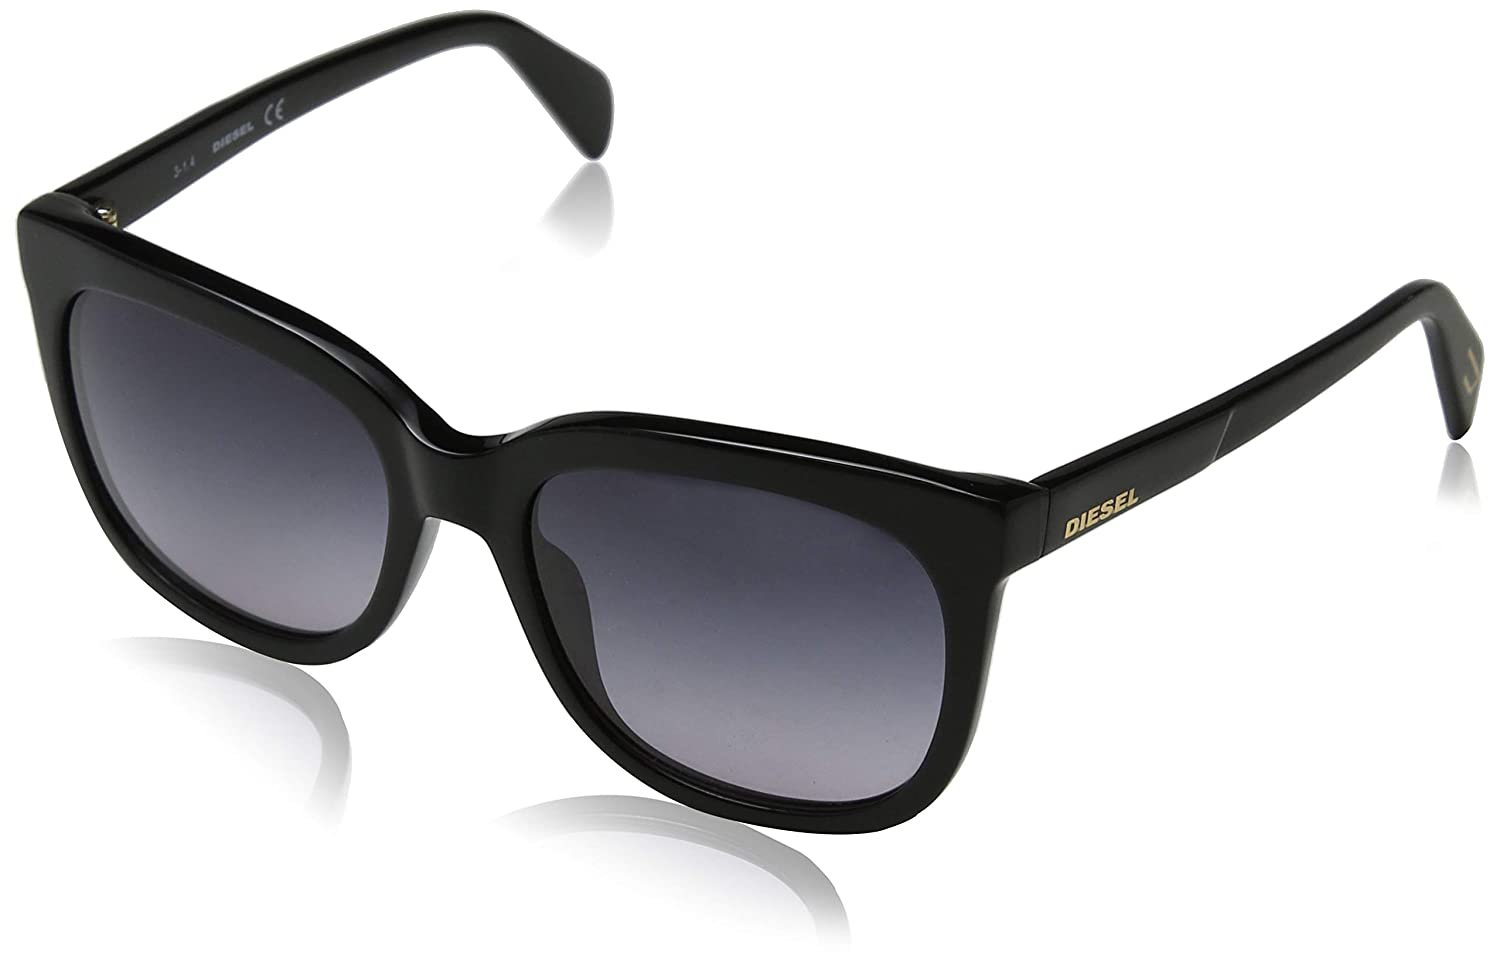 e698af1986 Amazon.com  Diesel Eyewear Womens Square Sunglasses (Black)  Shoes